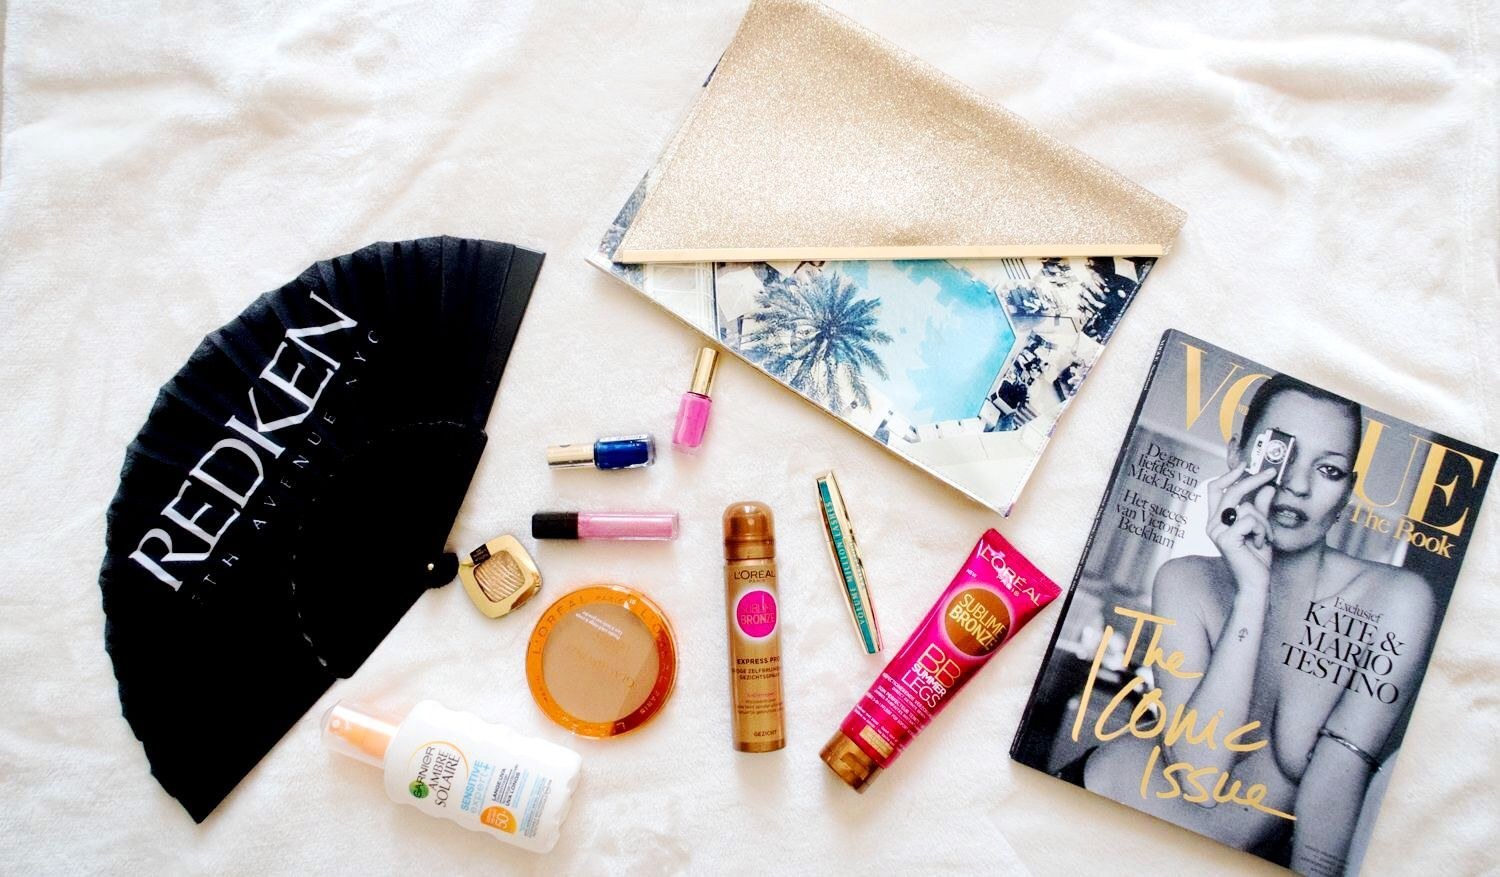 Beach day: 'I'm going to the beach and taking with me…'